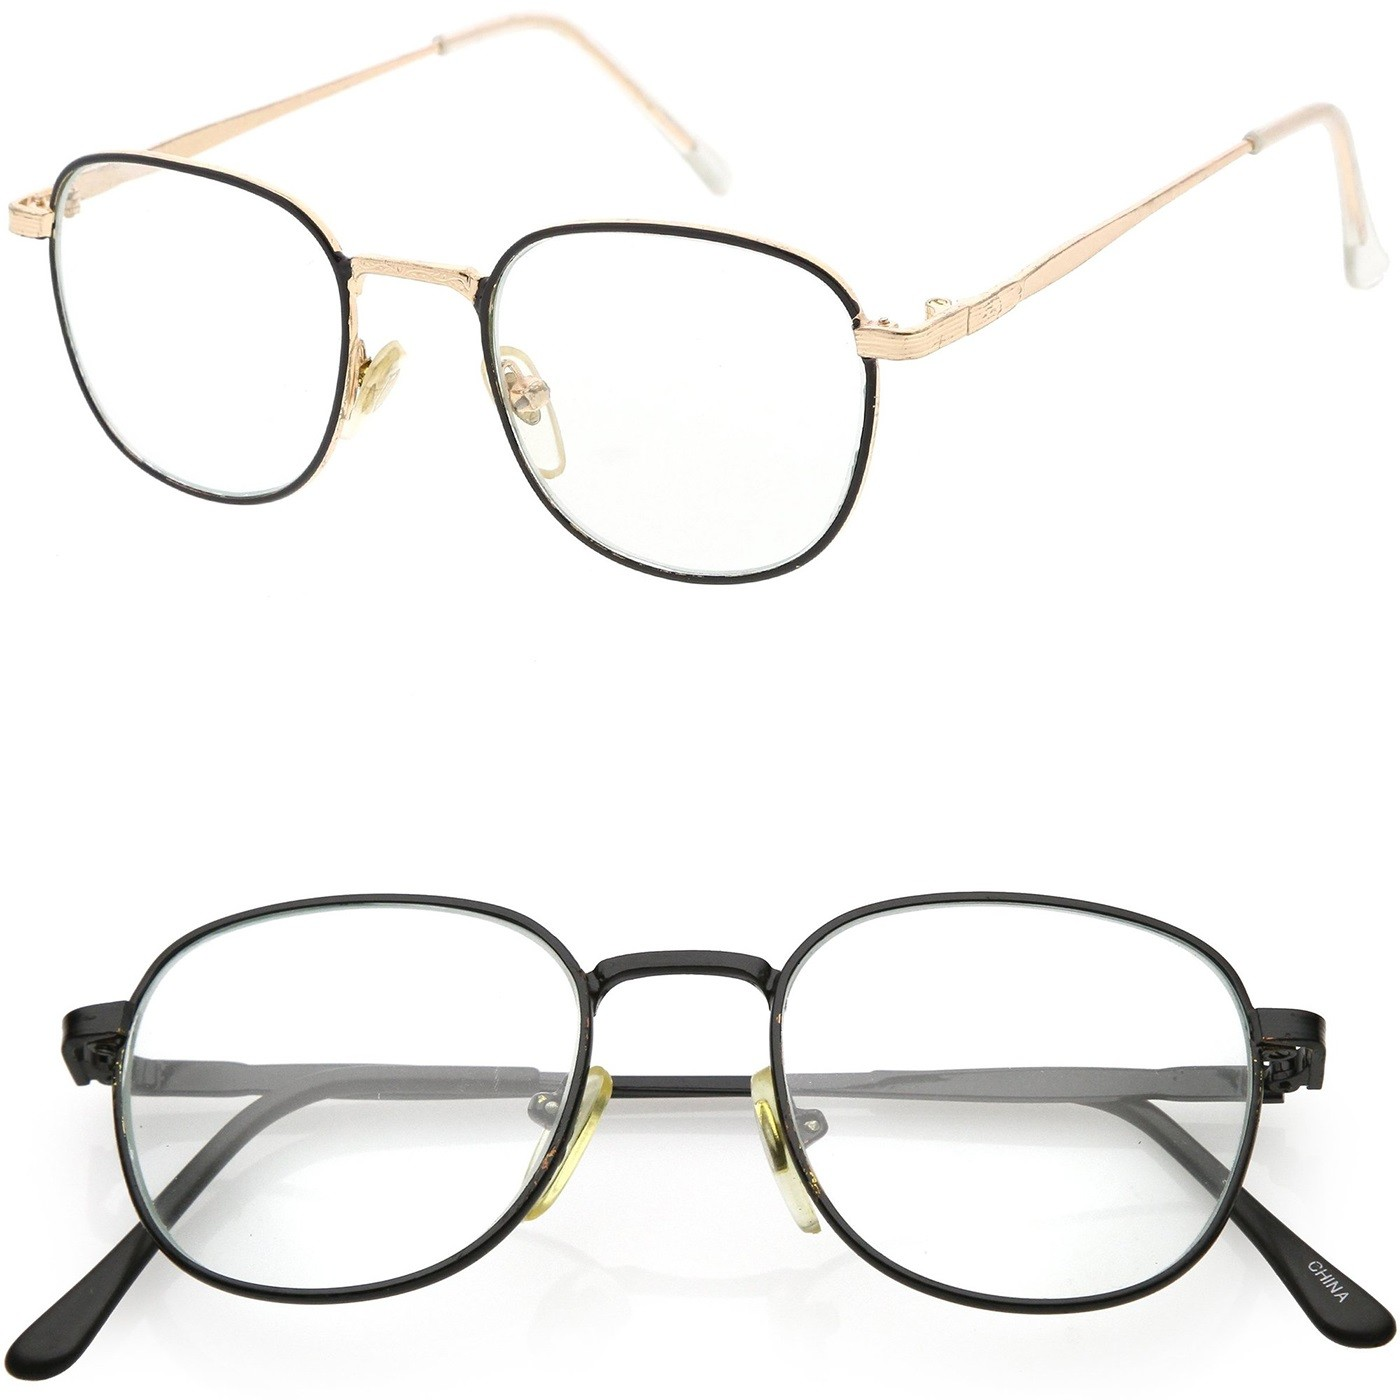 Glasses neutral Hippie - mod. BREAKING BAD Walter - optical frame VINTAGE man woman unisex